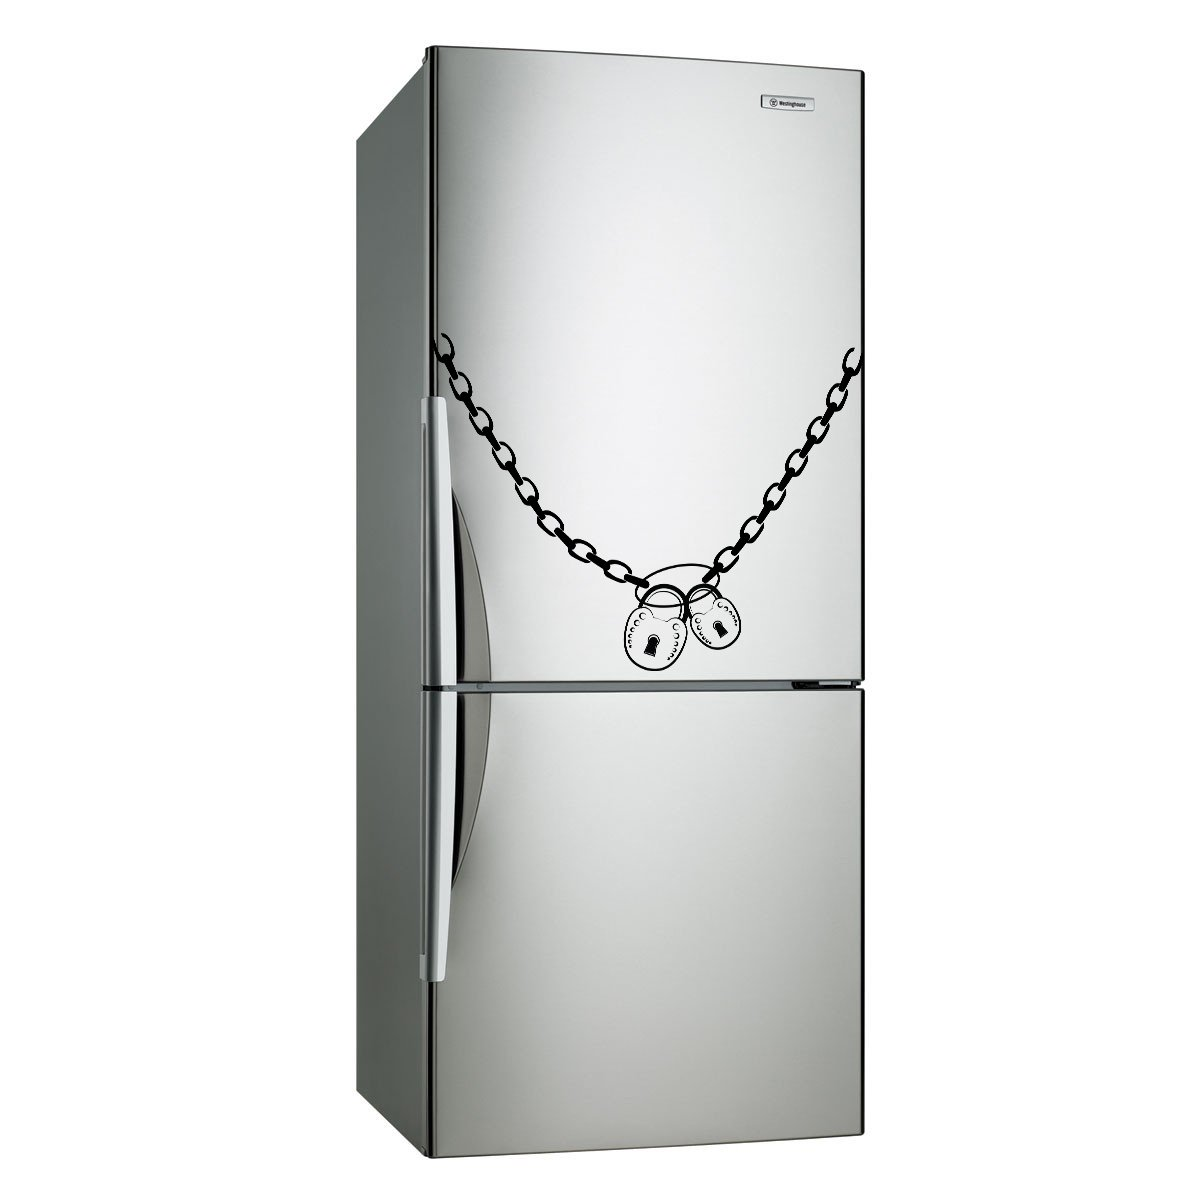 (35''x27'') Vinyl Fridge Decal Lock & Chain Refrigerator Art Decor Home Sticker + Free Decal Gift!